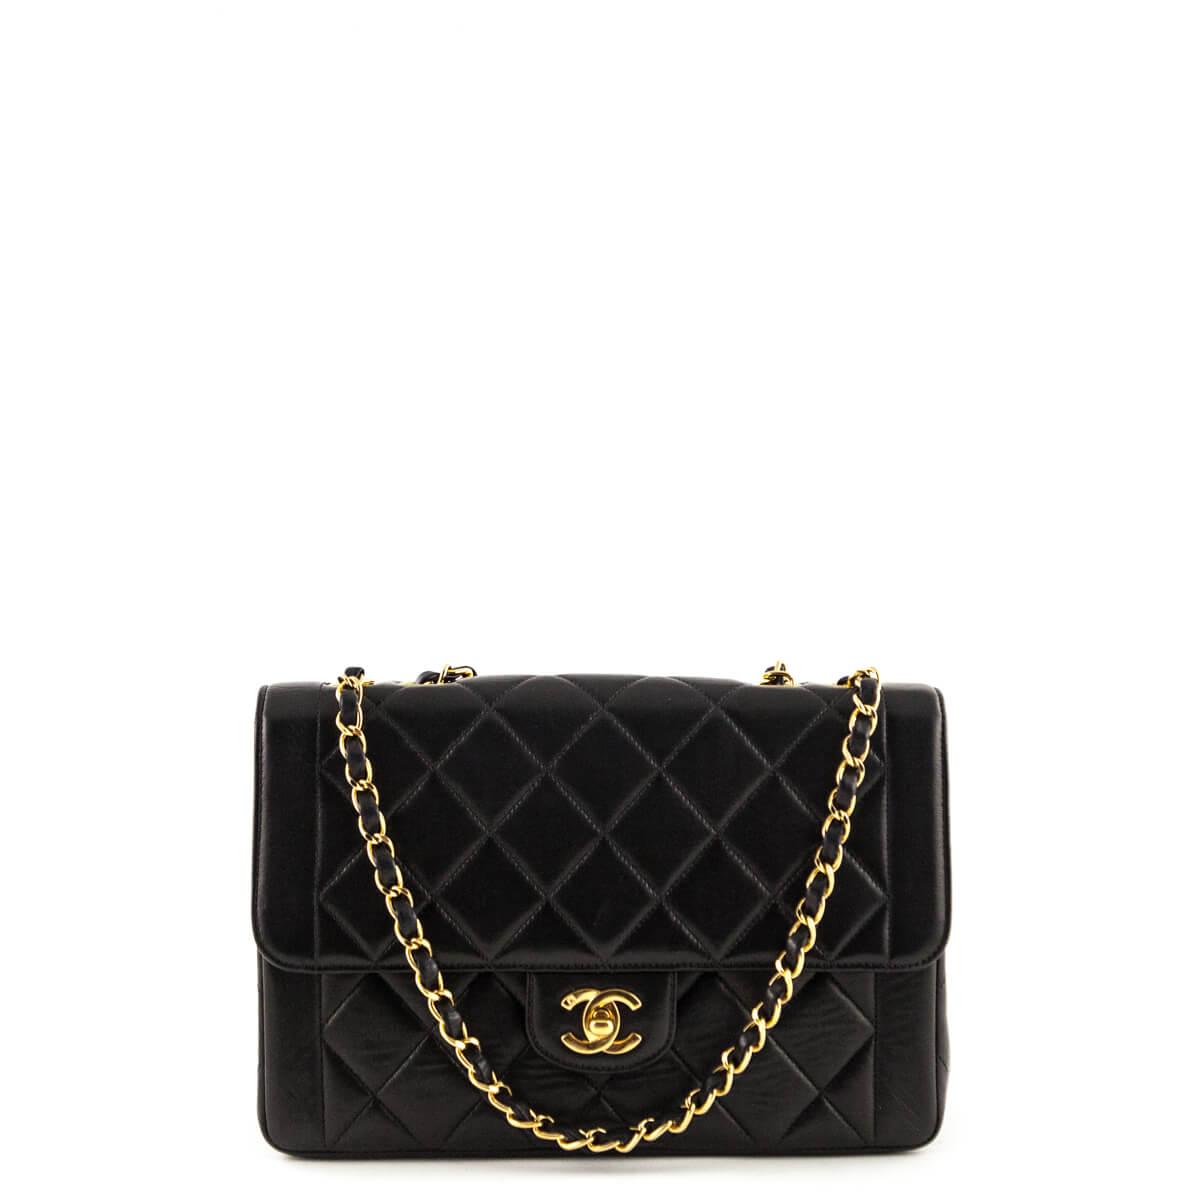 cba3d104644e01 Chanel Black Lambskin Vintage Single Flap Bag GHW - LOVE that BAG - Preowned  Authentic Designer ...